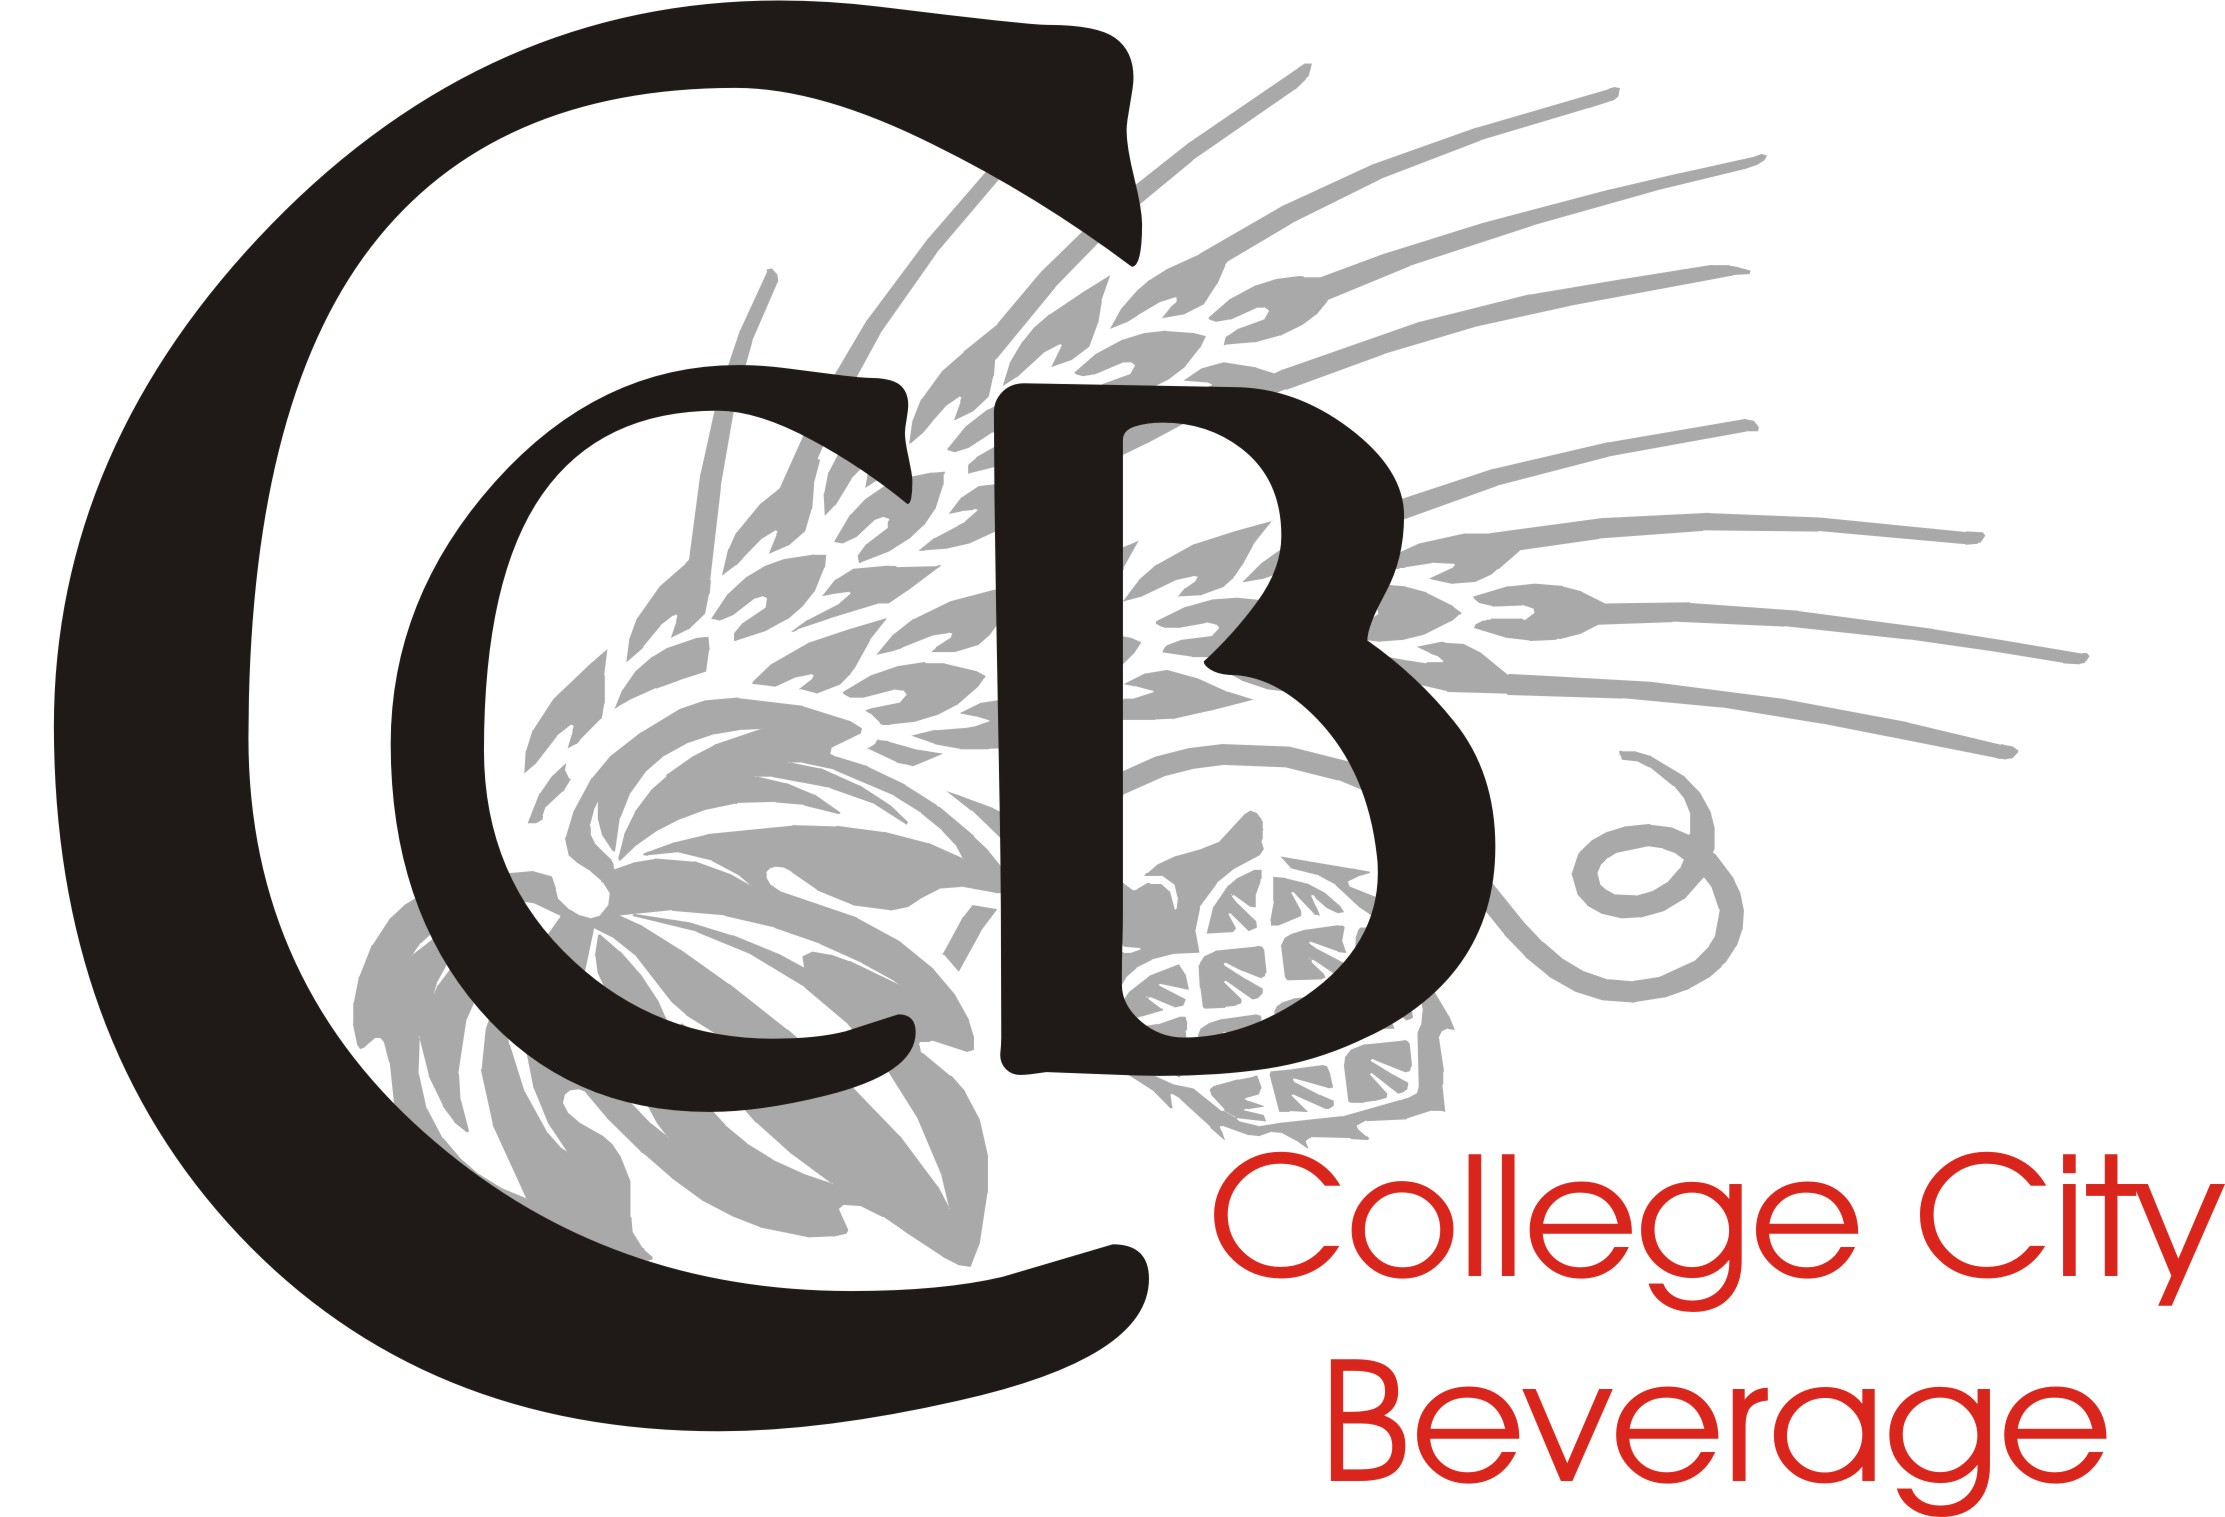 College City Beverage